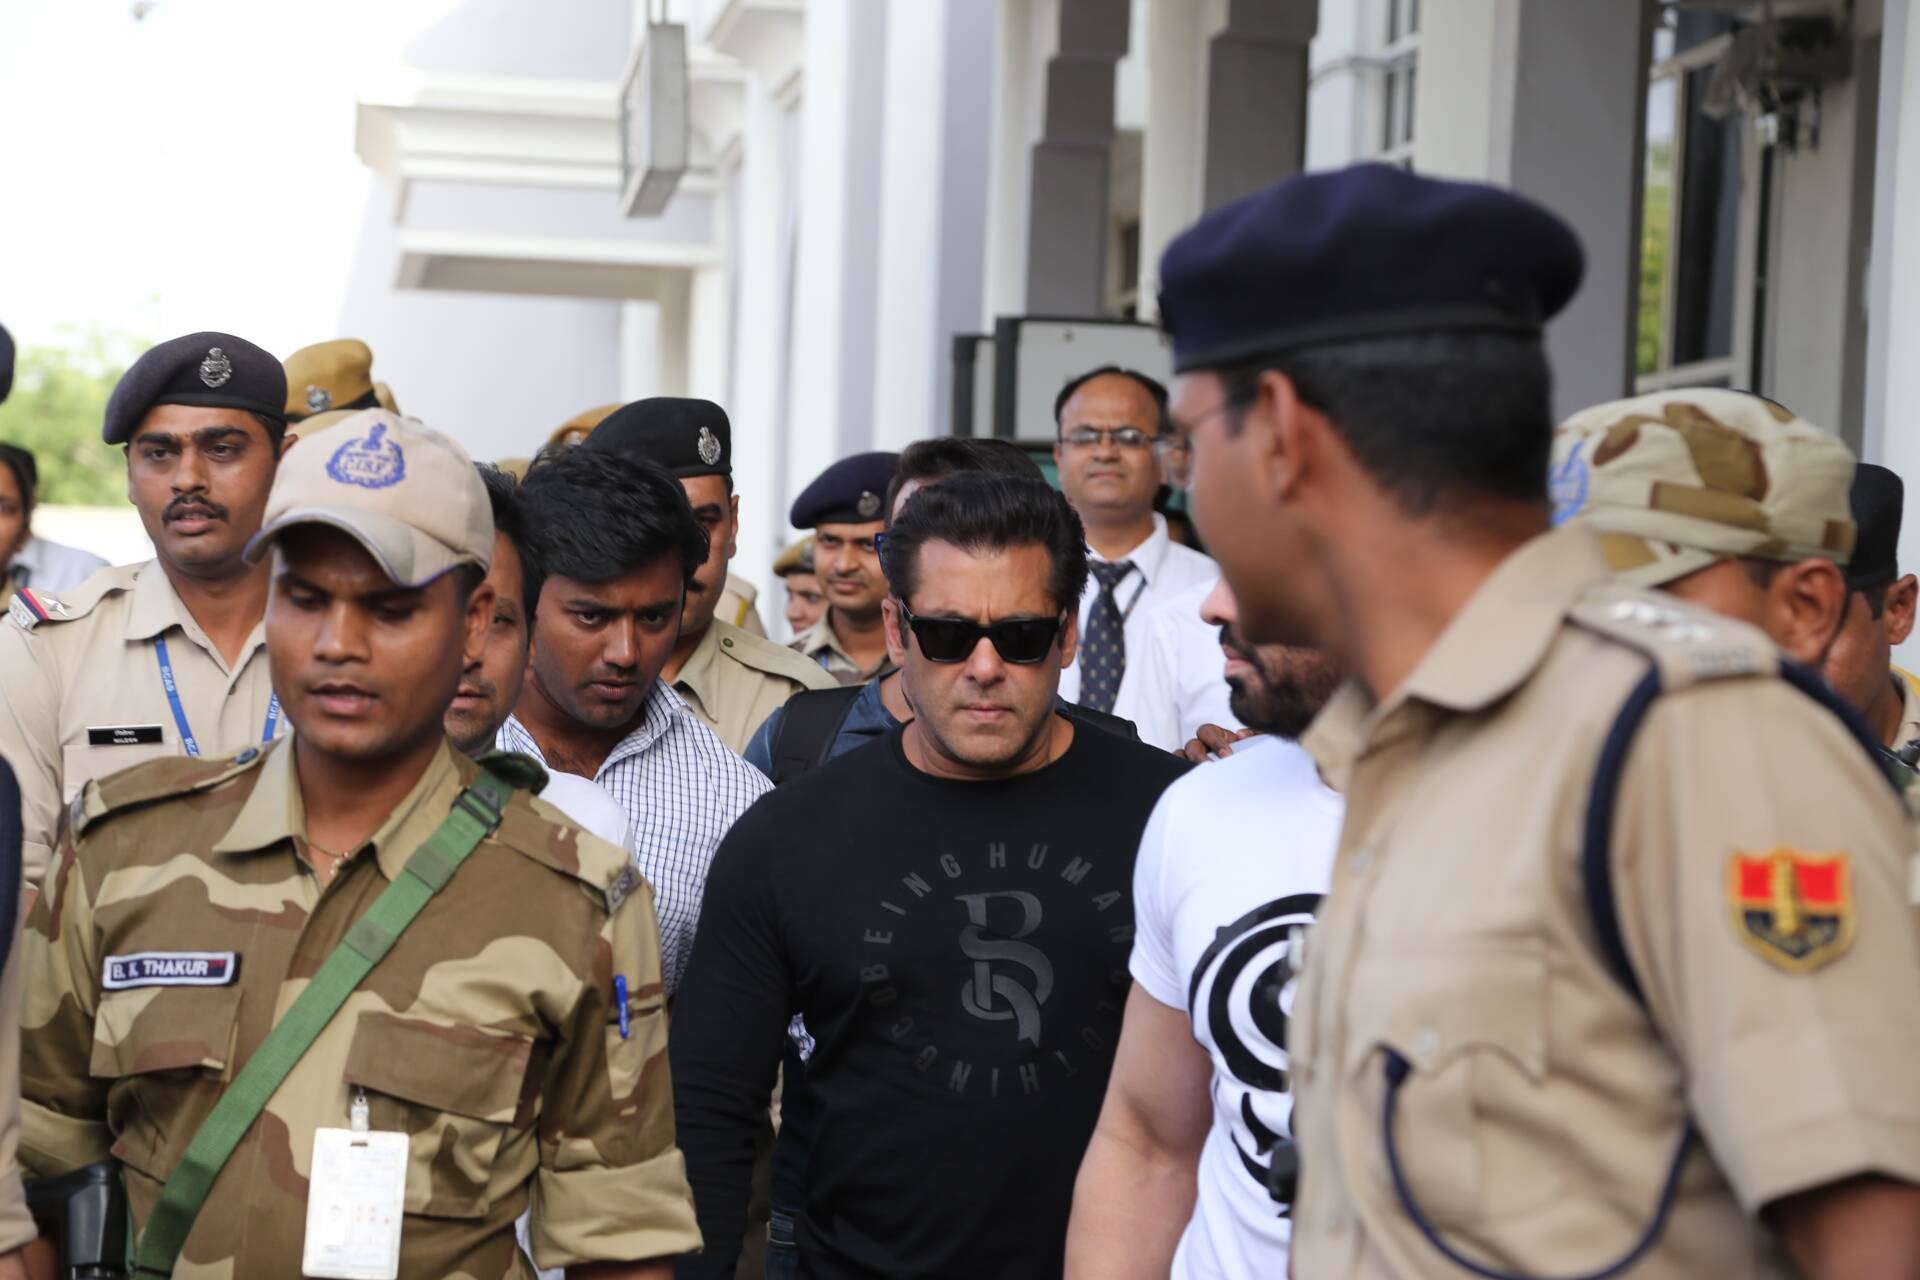 Salman in jail, projects of Rs 1K cr hang in balance